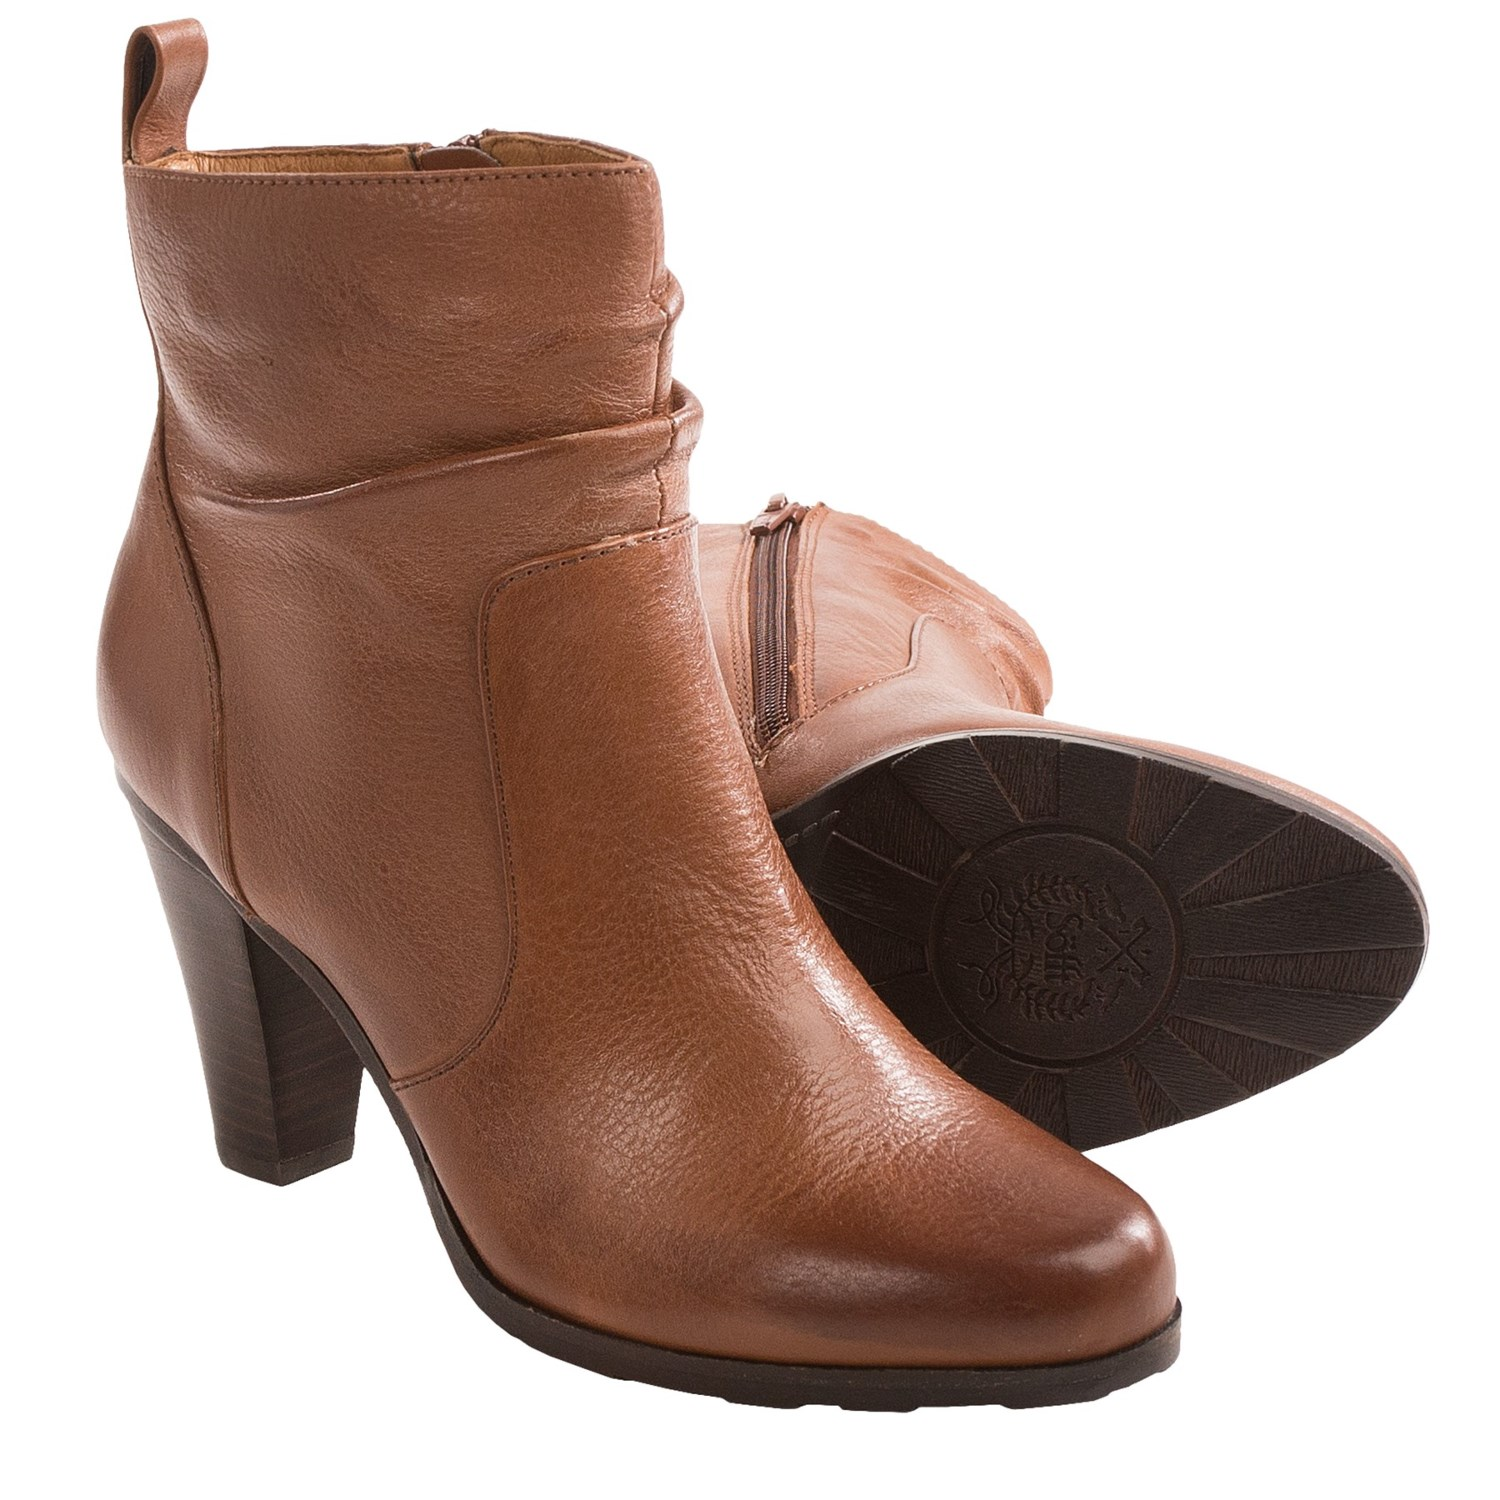 Shoes online Sofft boots clearance